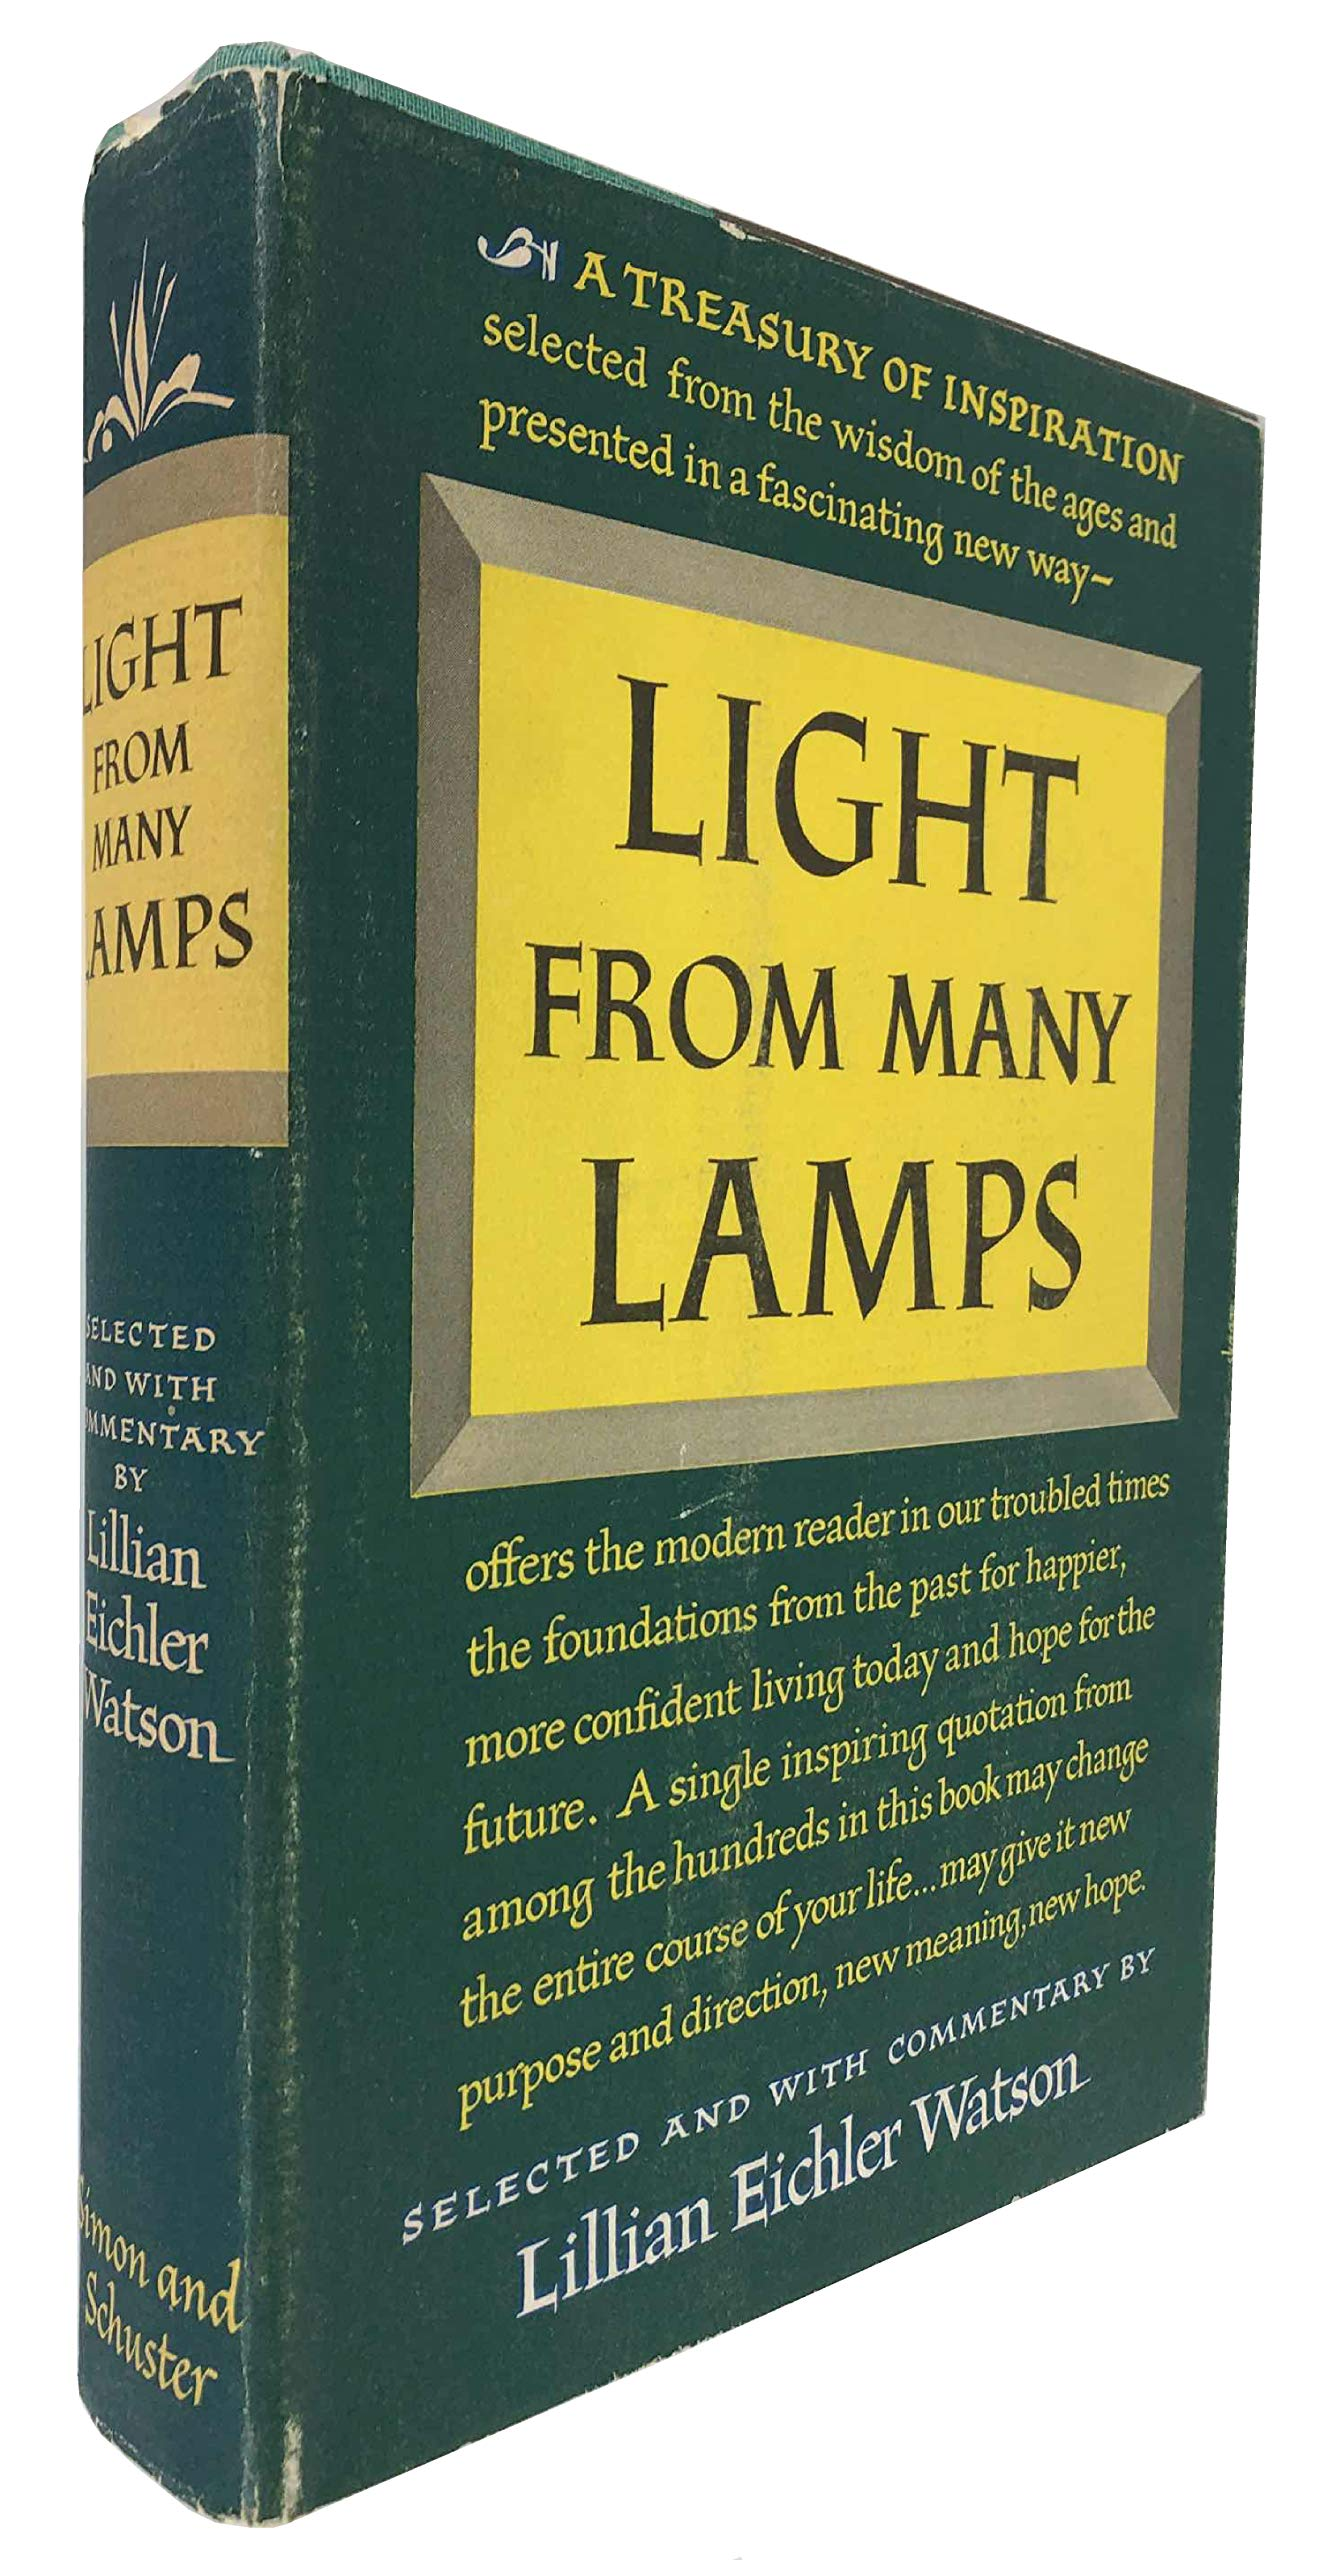 light from many lamps by lillian eichler watson free download